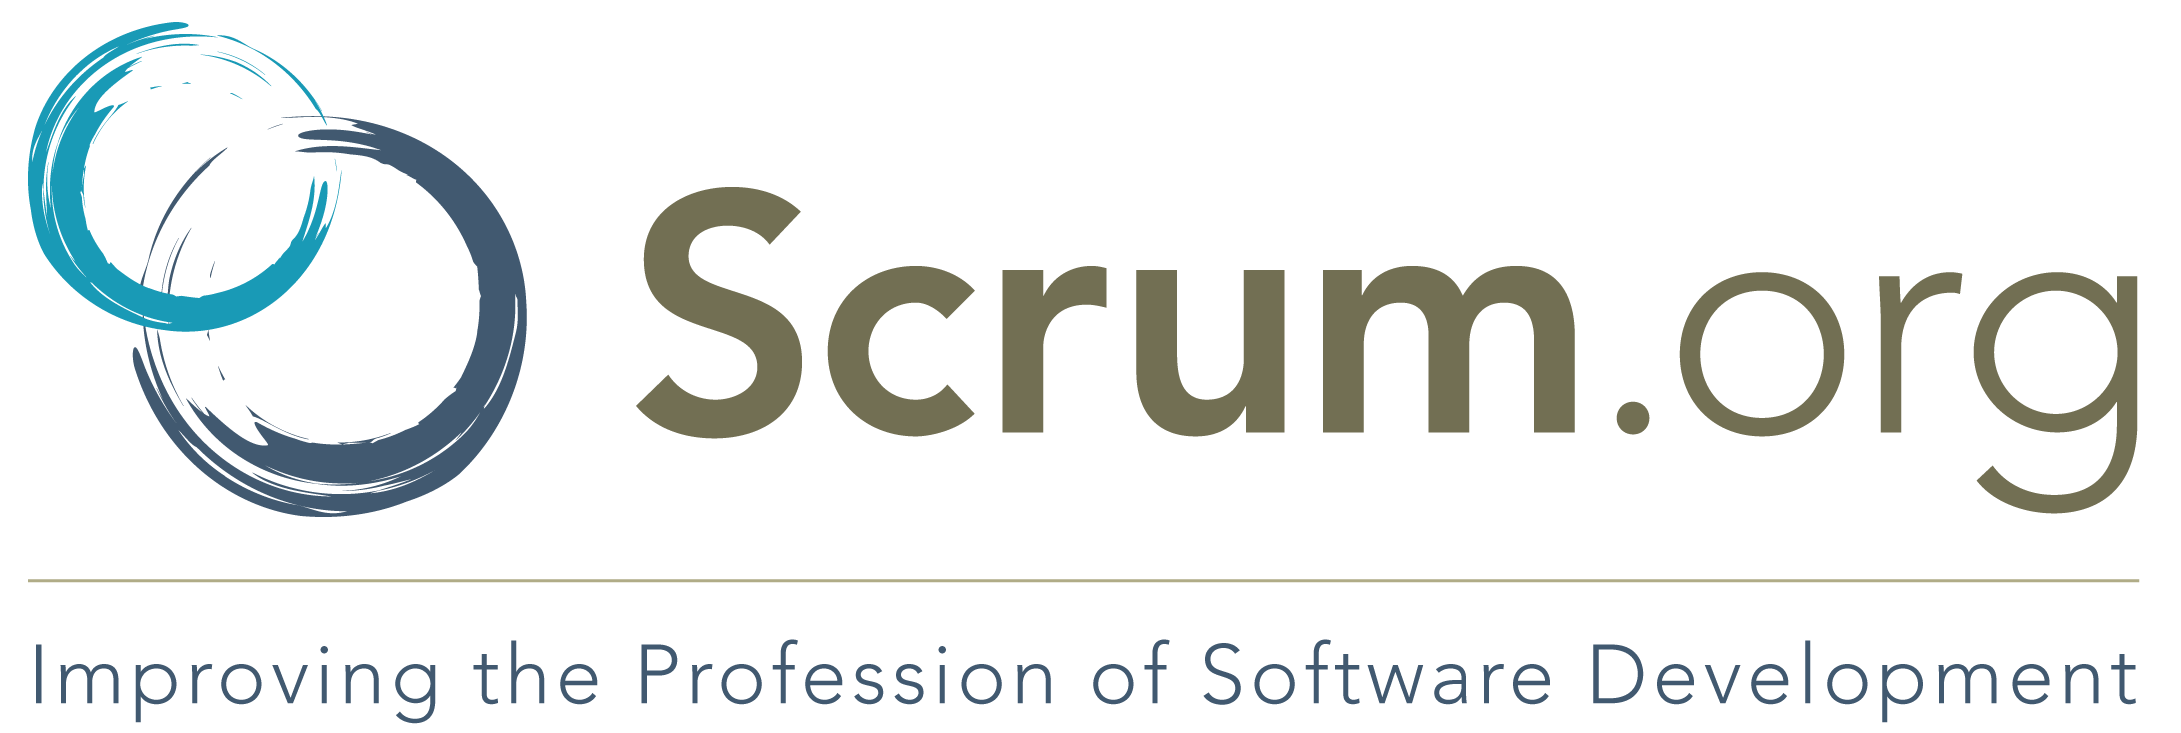 Professional scrum master certification in portland oregon july 18 19 professional scrum master course portland july 18 19 1betcityfo Images